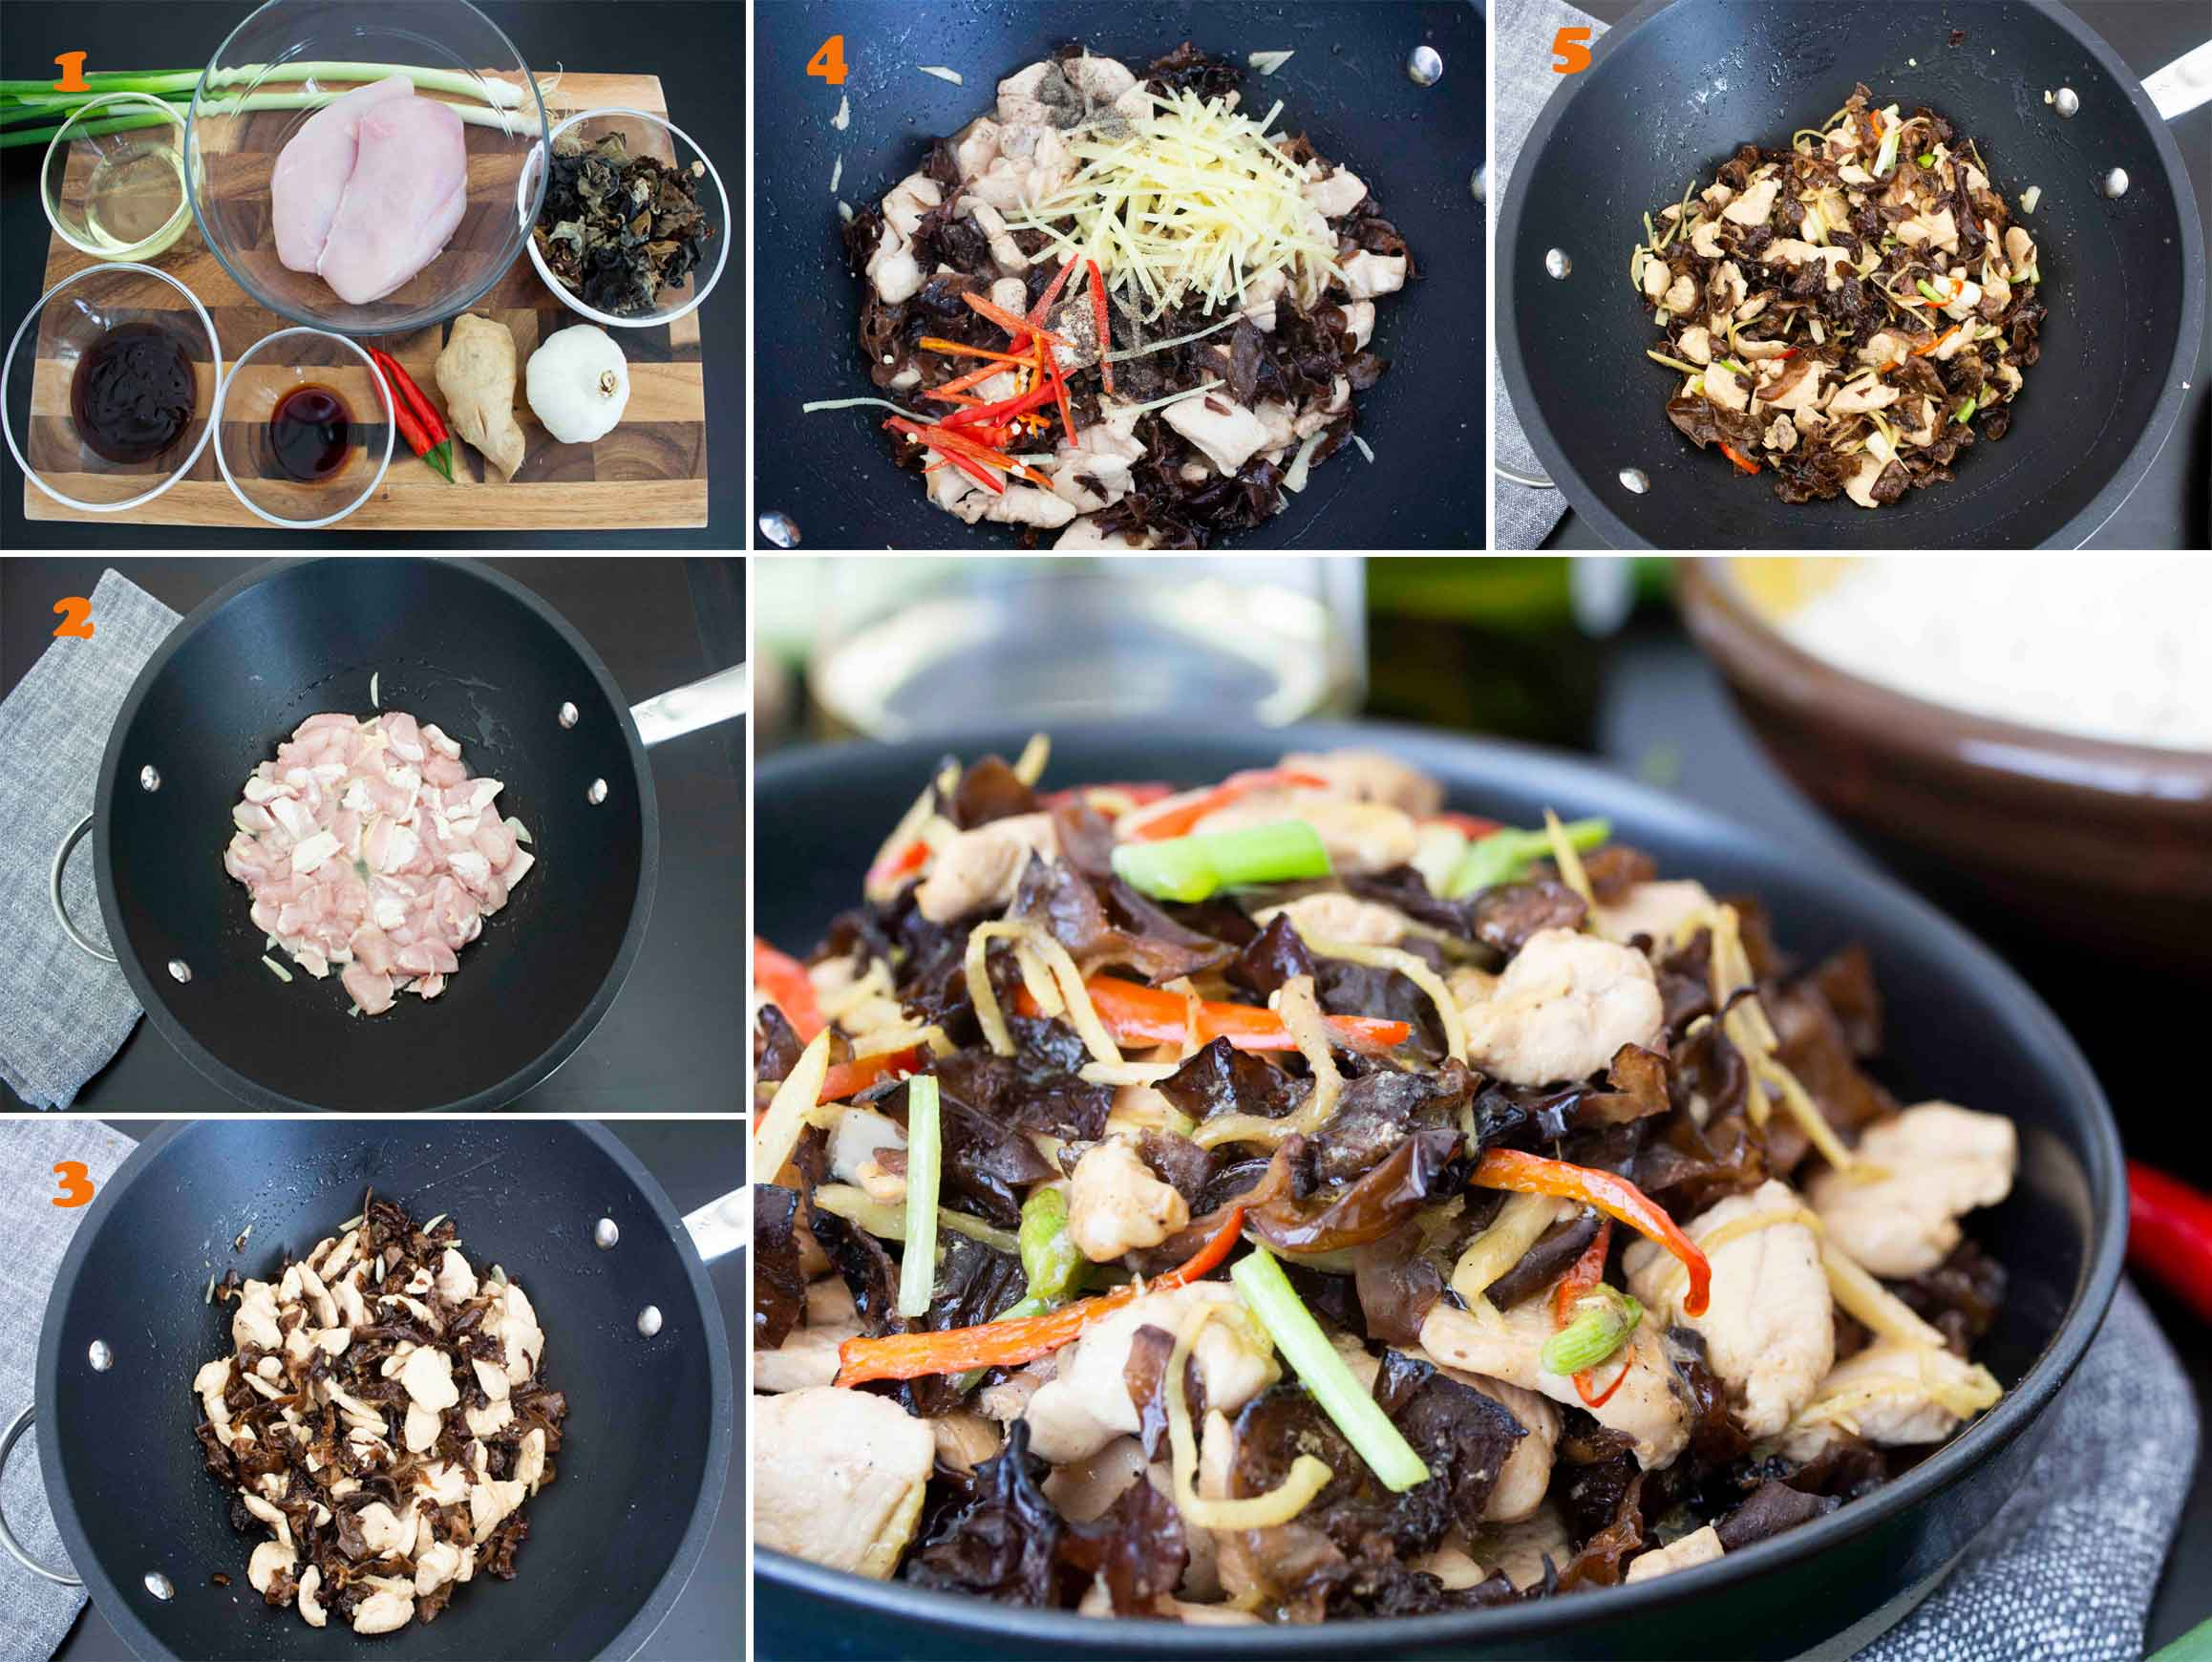 Collage of images showing the step by step process of making Thai Ginger Chicken.